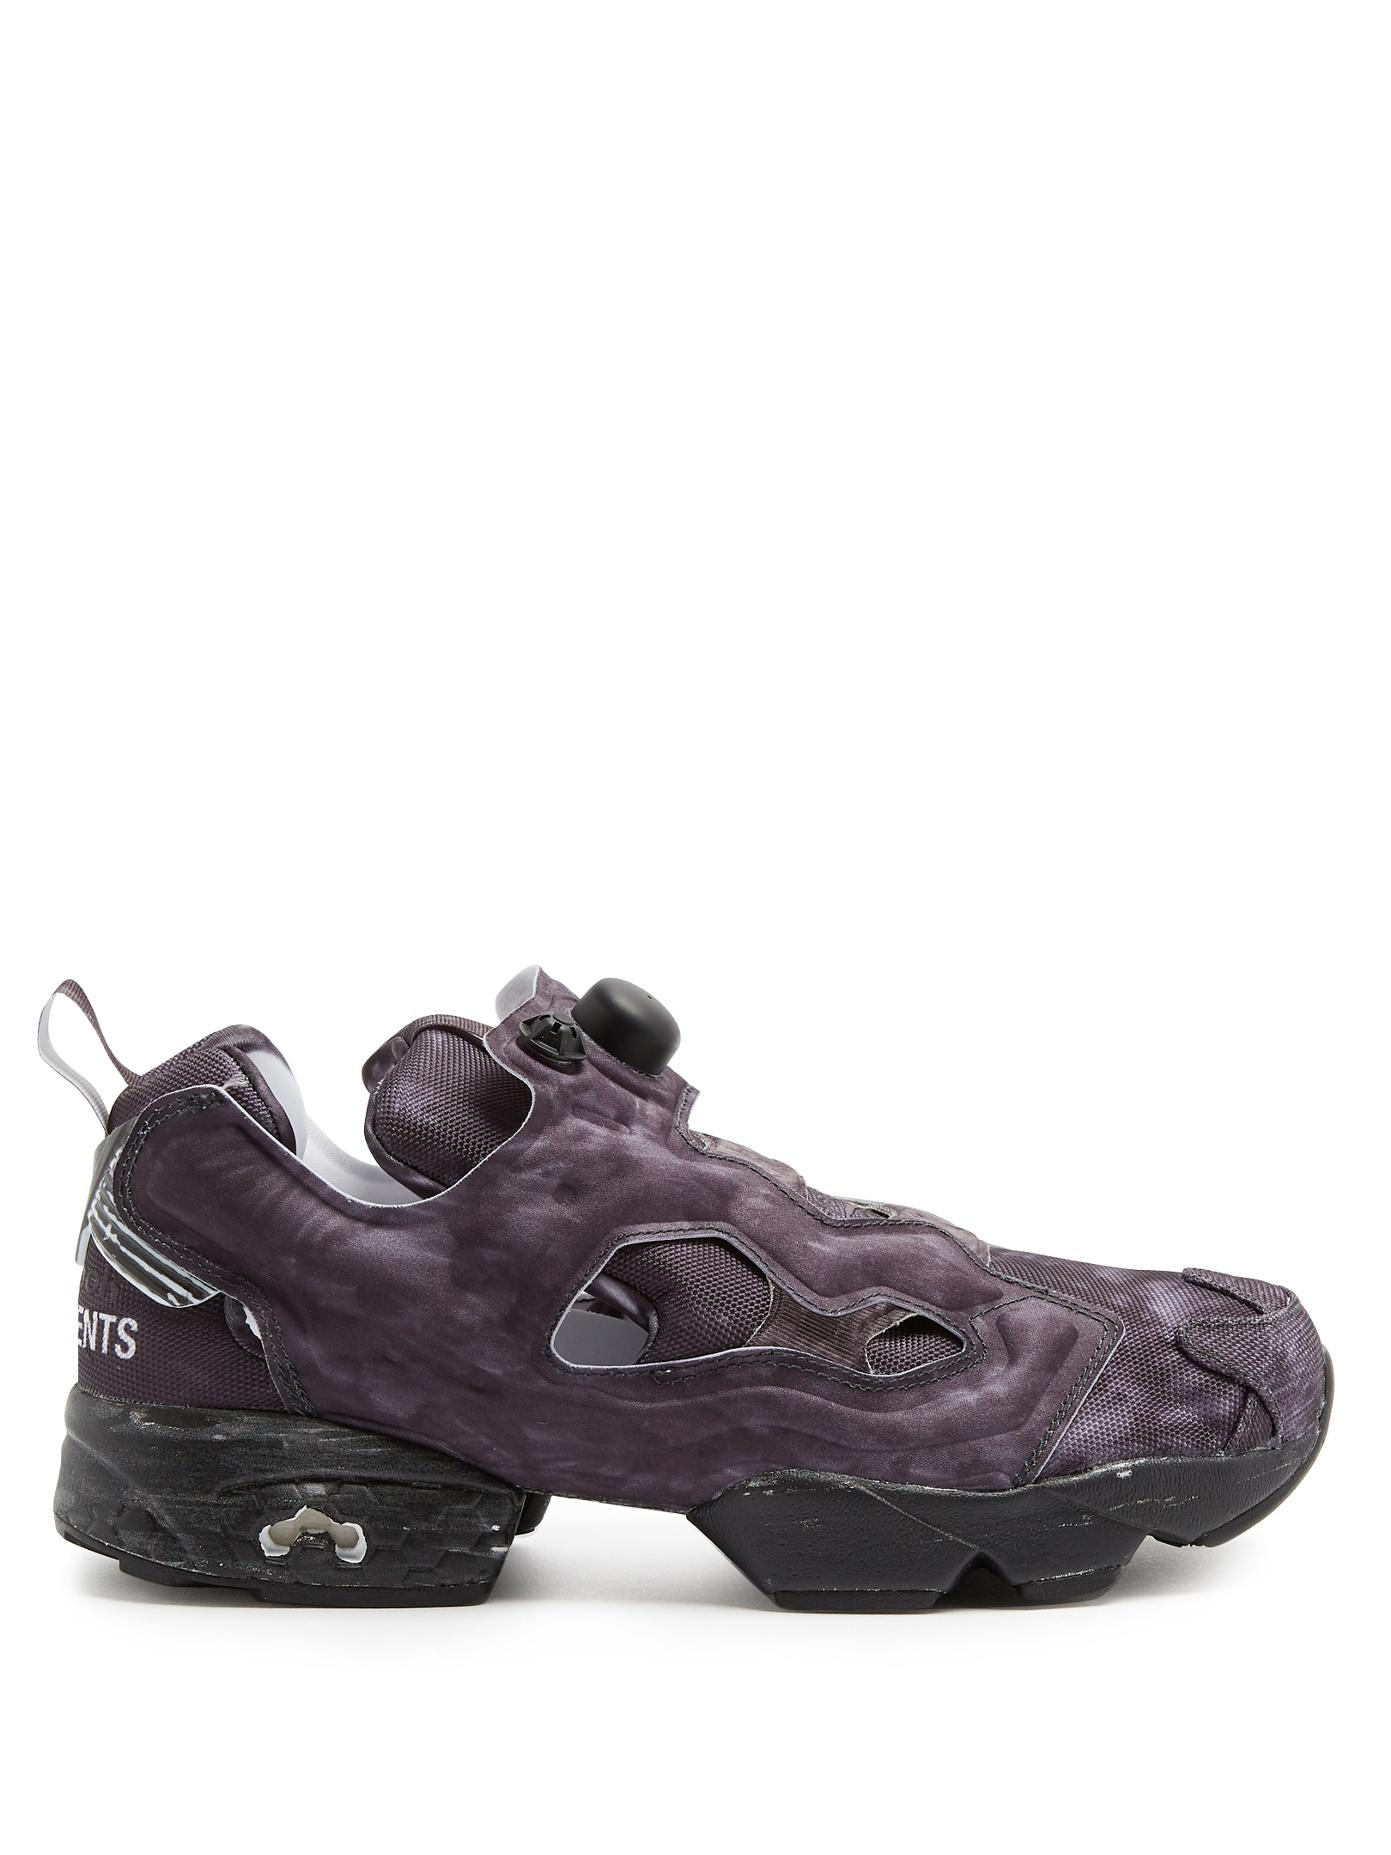 Vetements X Reebok Instapump Fury Canvas Trainers In Tonal-Grey ... 4d487b826